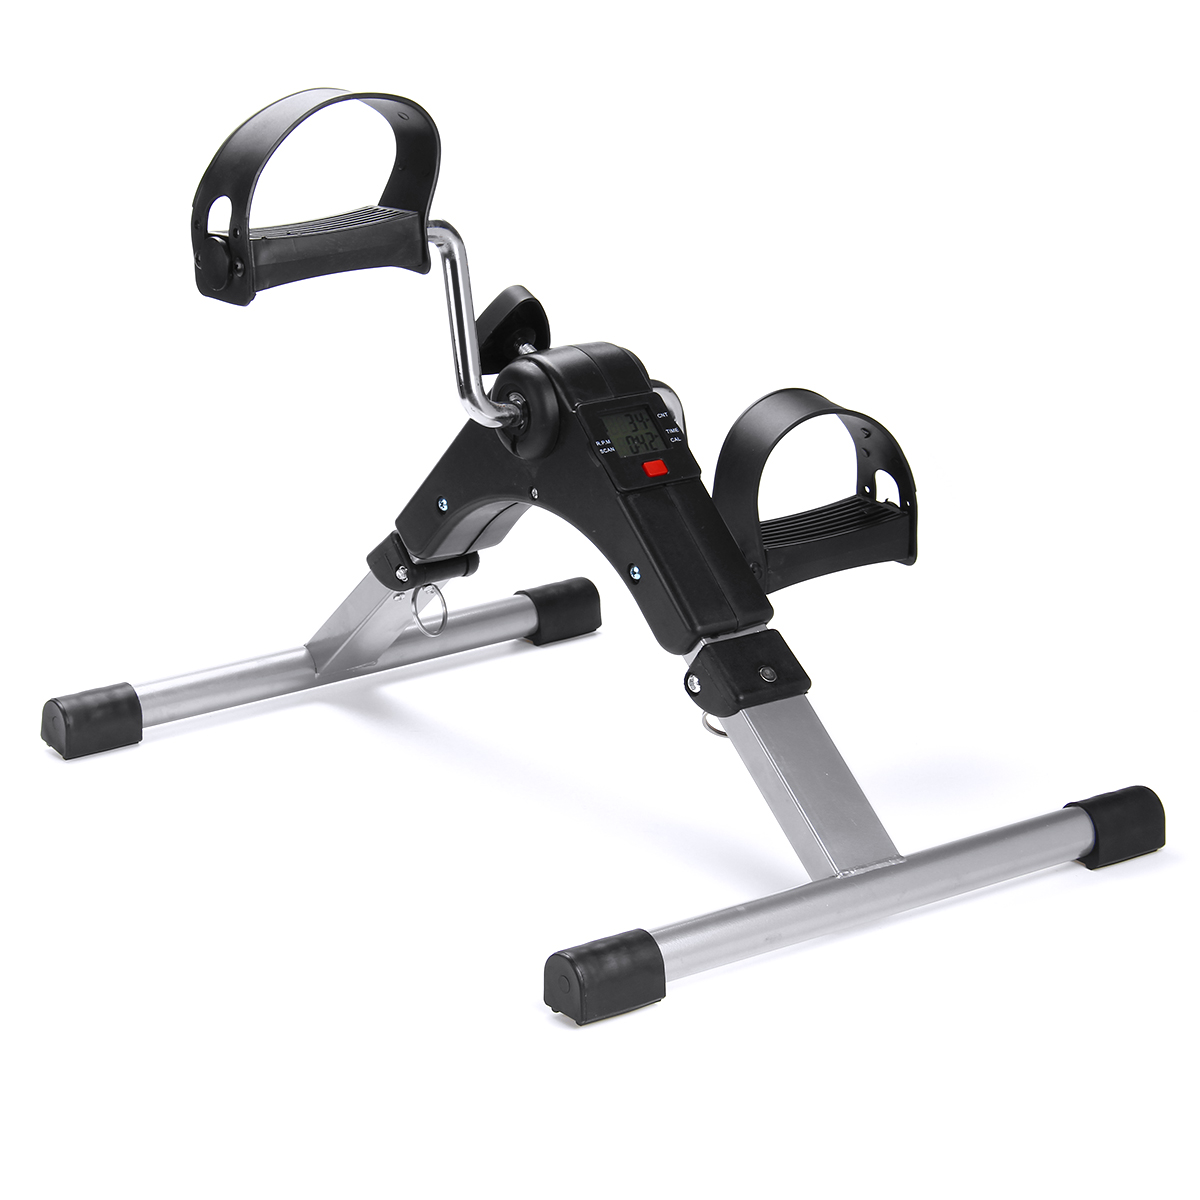 Fitness Bicycle Household Mini Exercise Bike Body Gym Machine Hand Leg Rehabilitation Indoor Foldable With Anti-slip Pedal